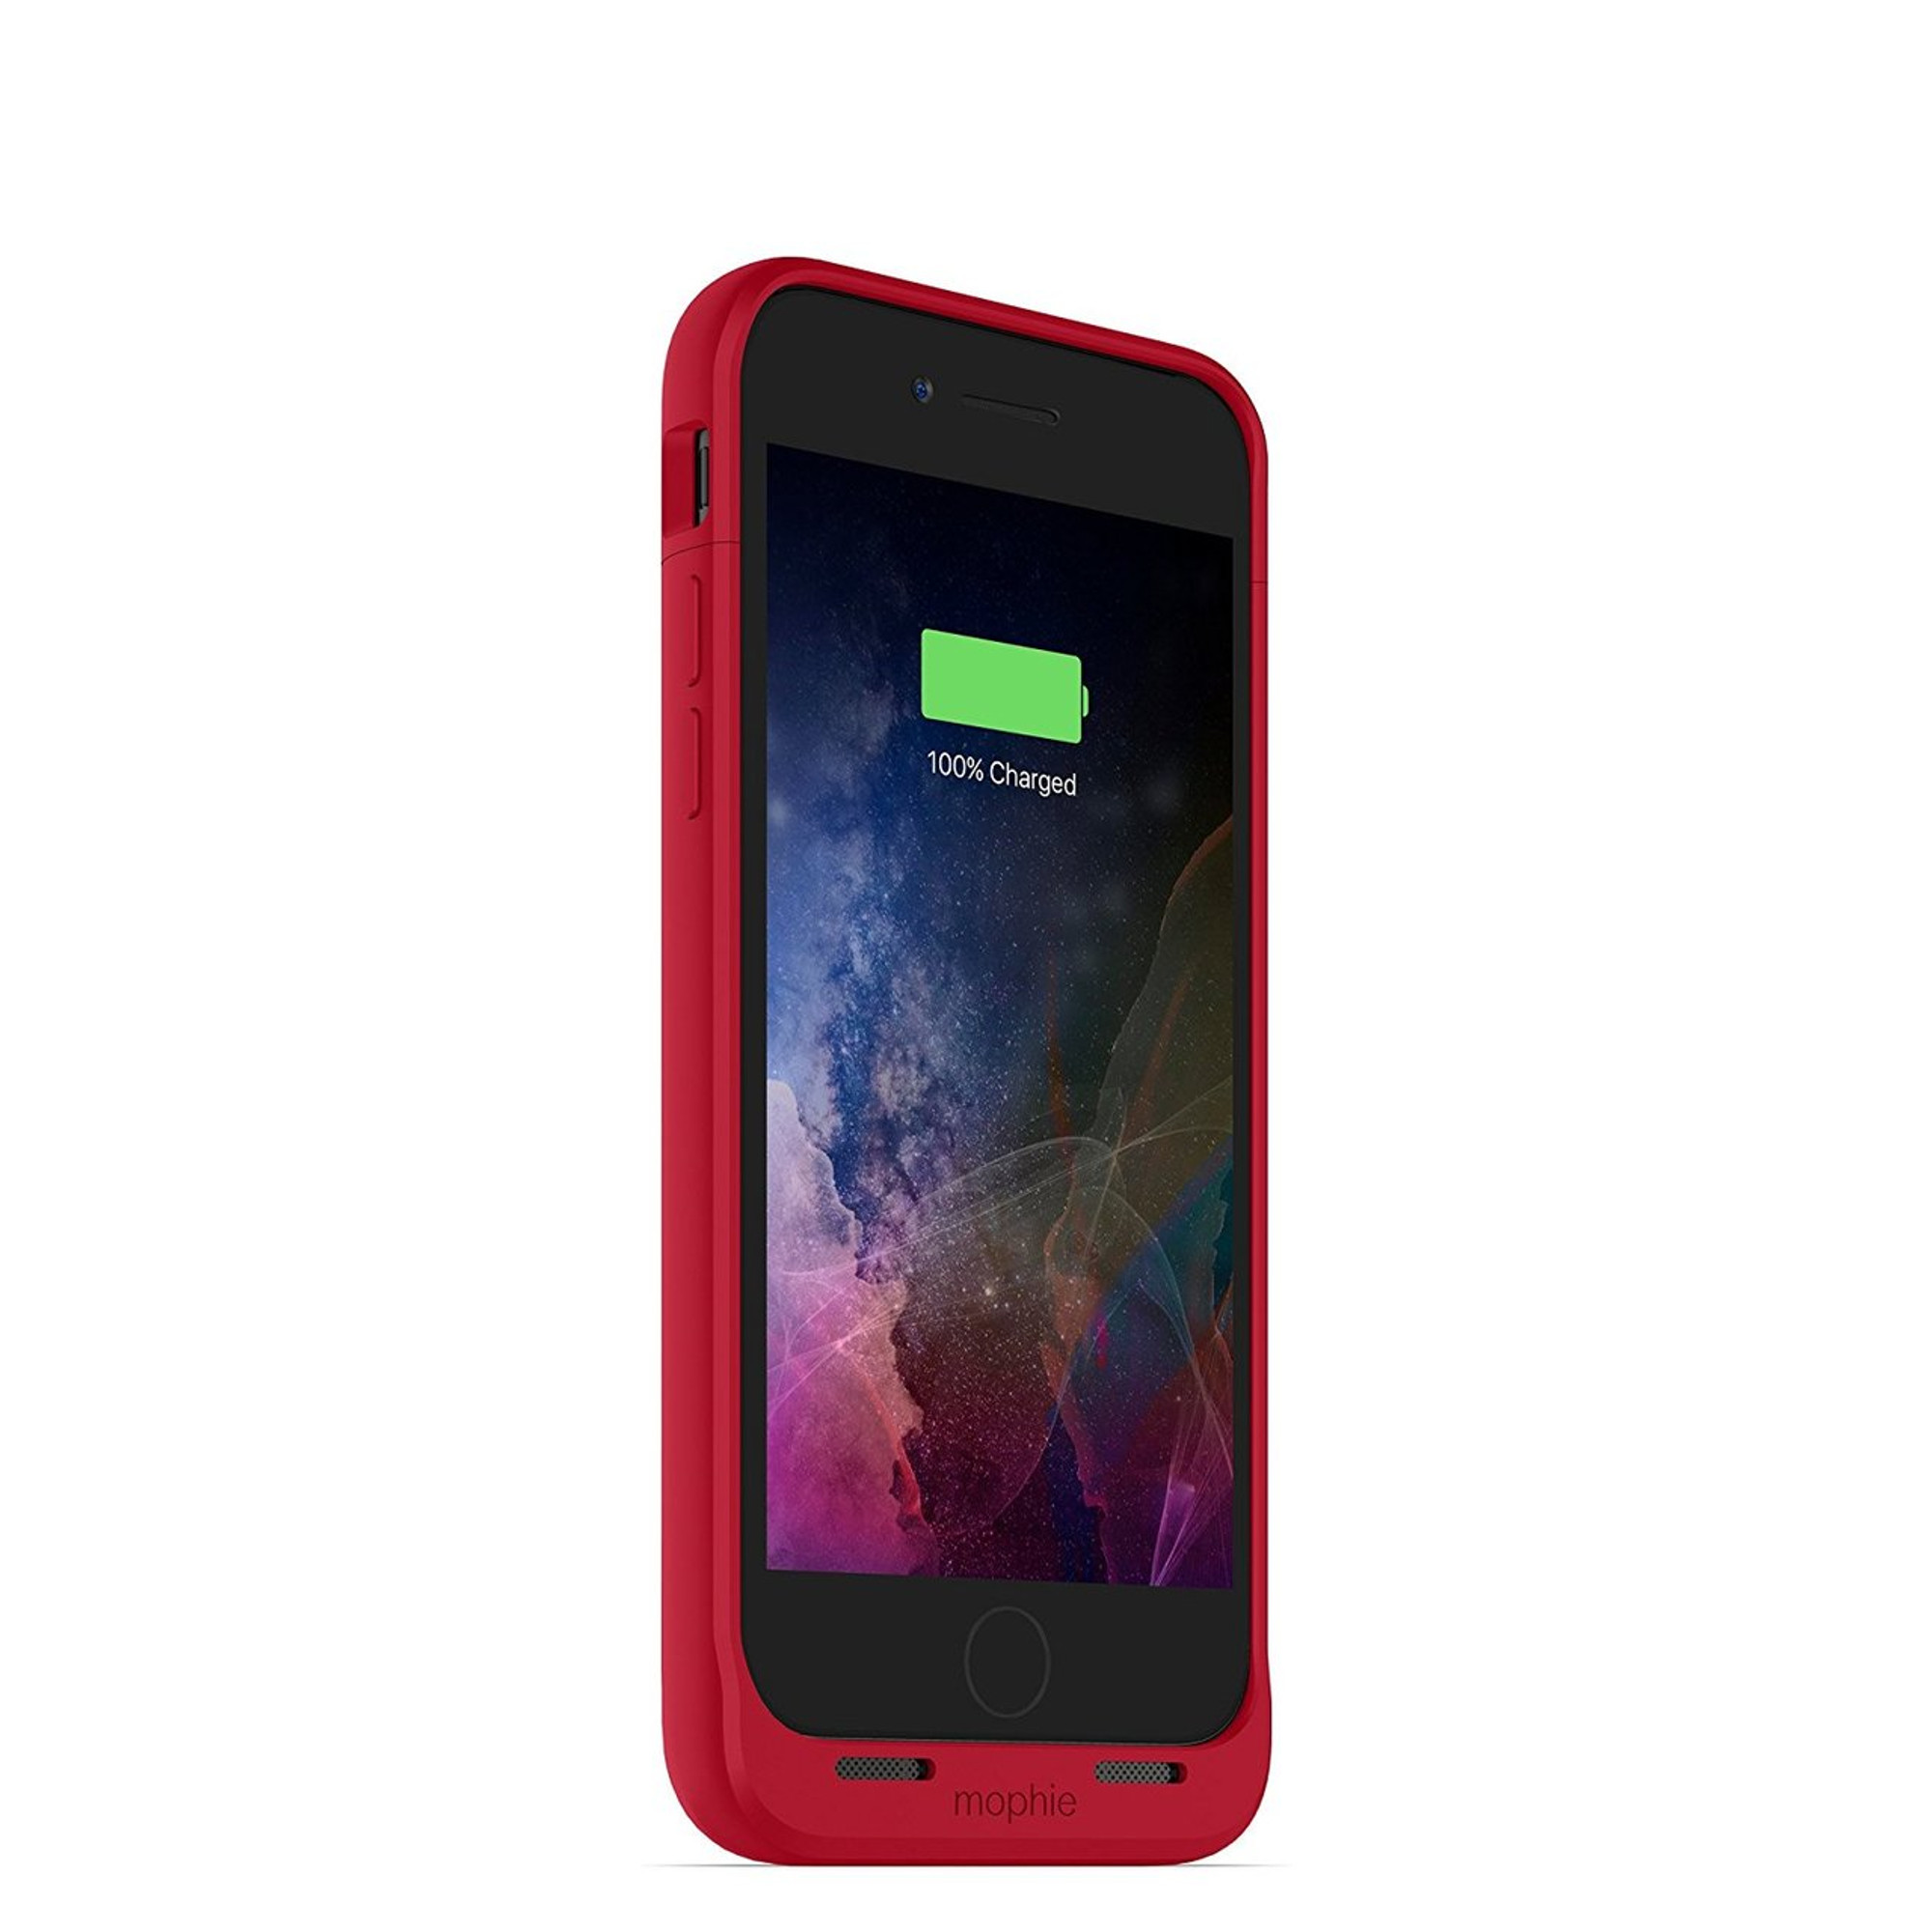 size 40 69e43 3329a mophie juice pack air for iPhone 7 Plus - Red